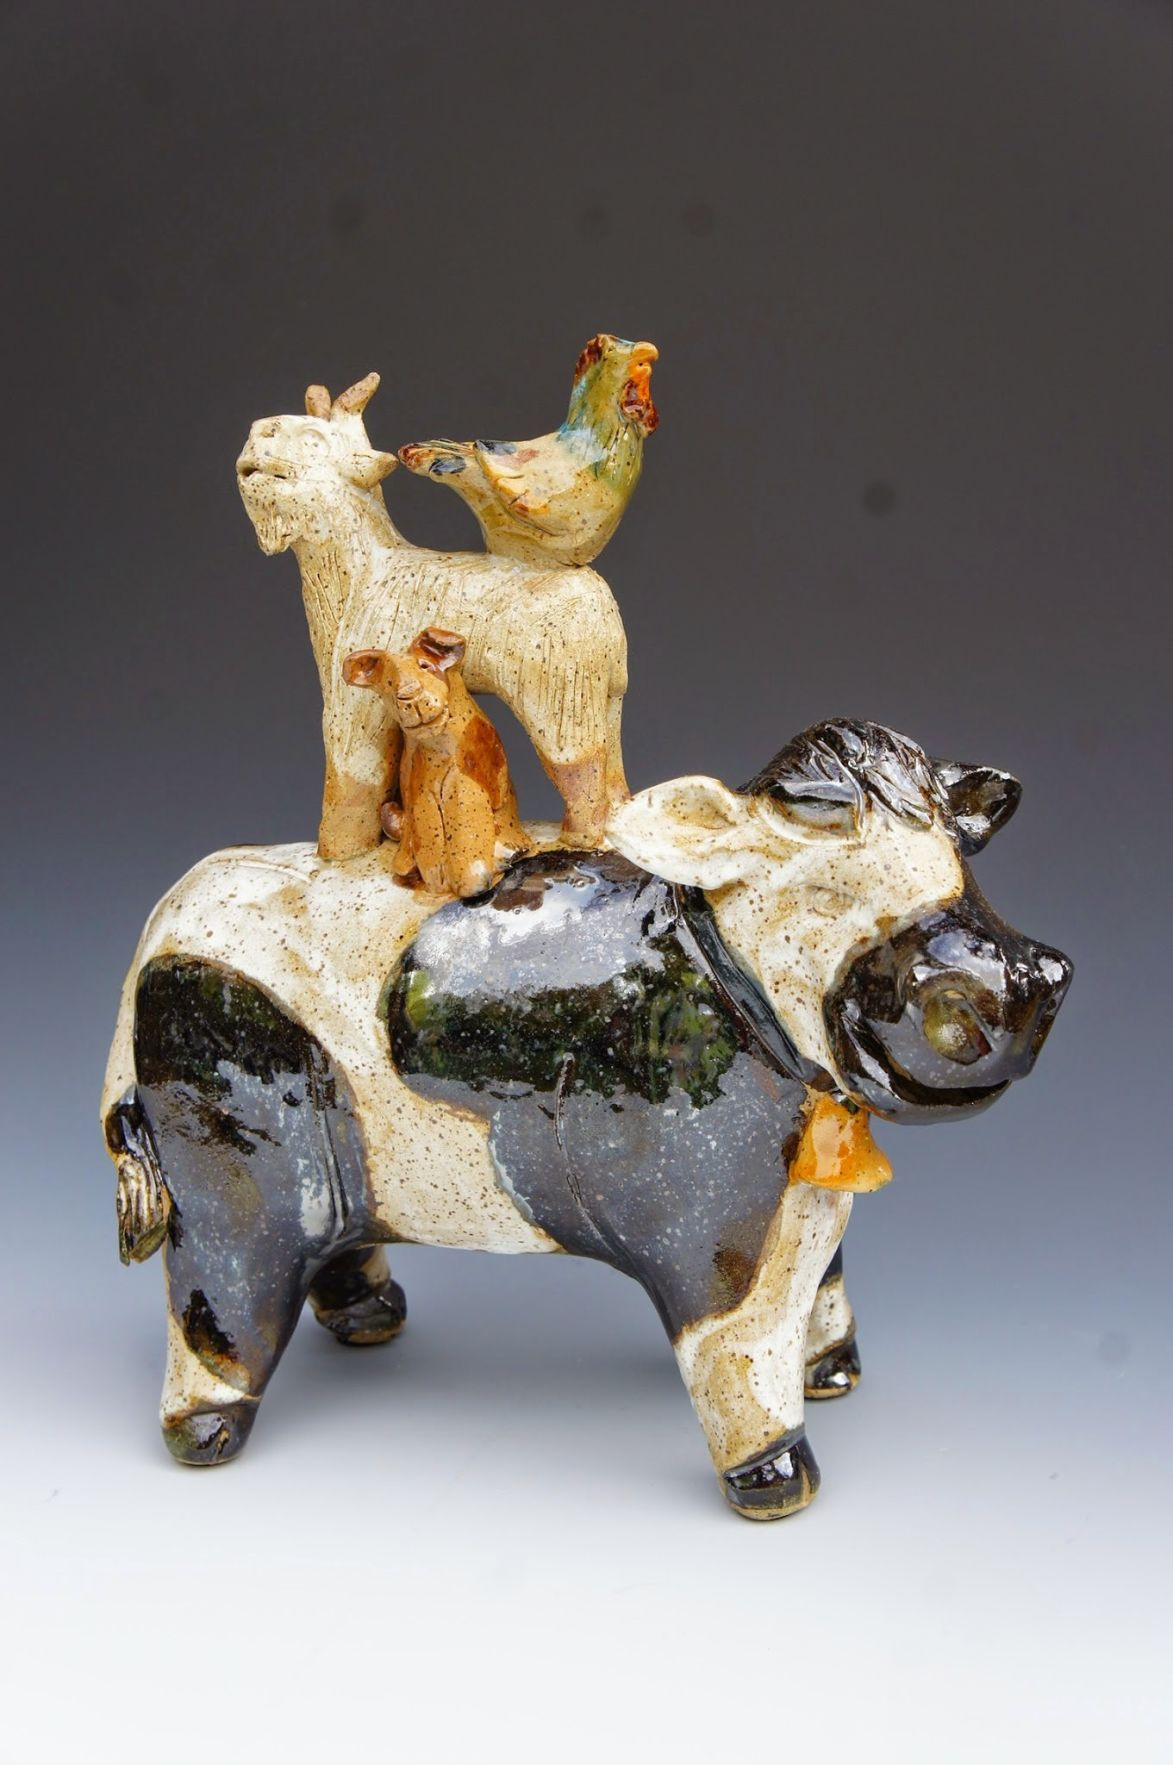 Clay comes to The Galleries of the Cabarrus Arts Council